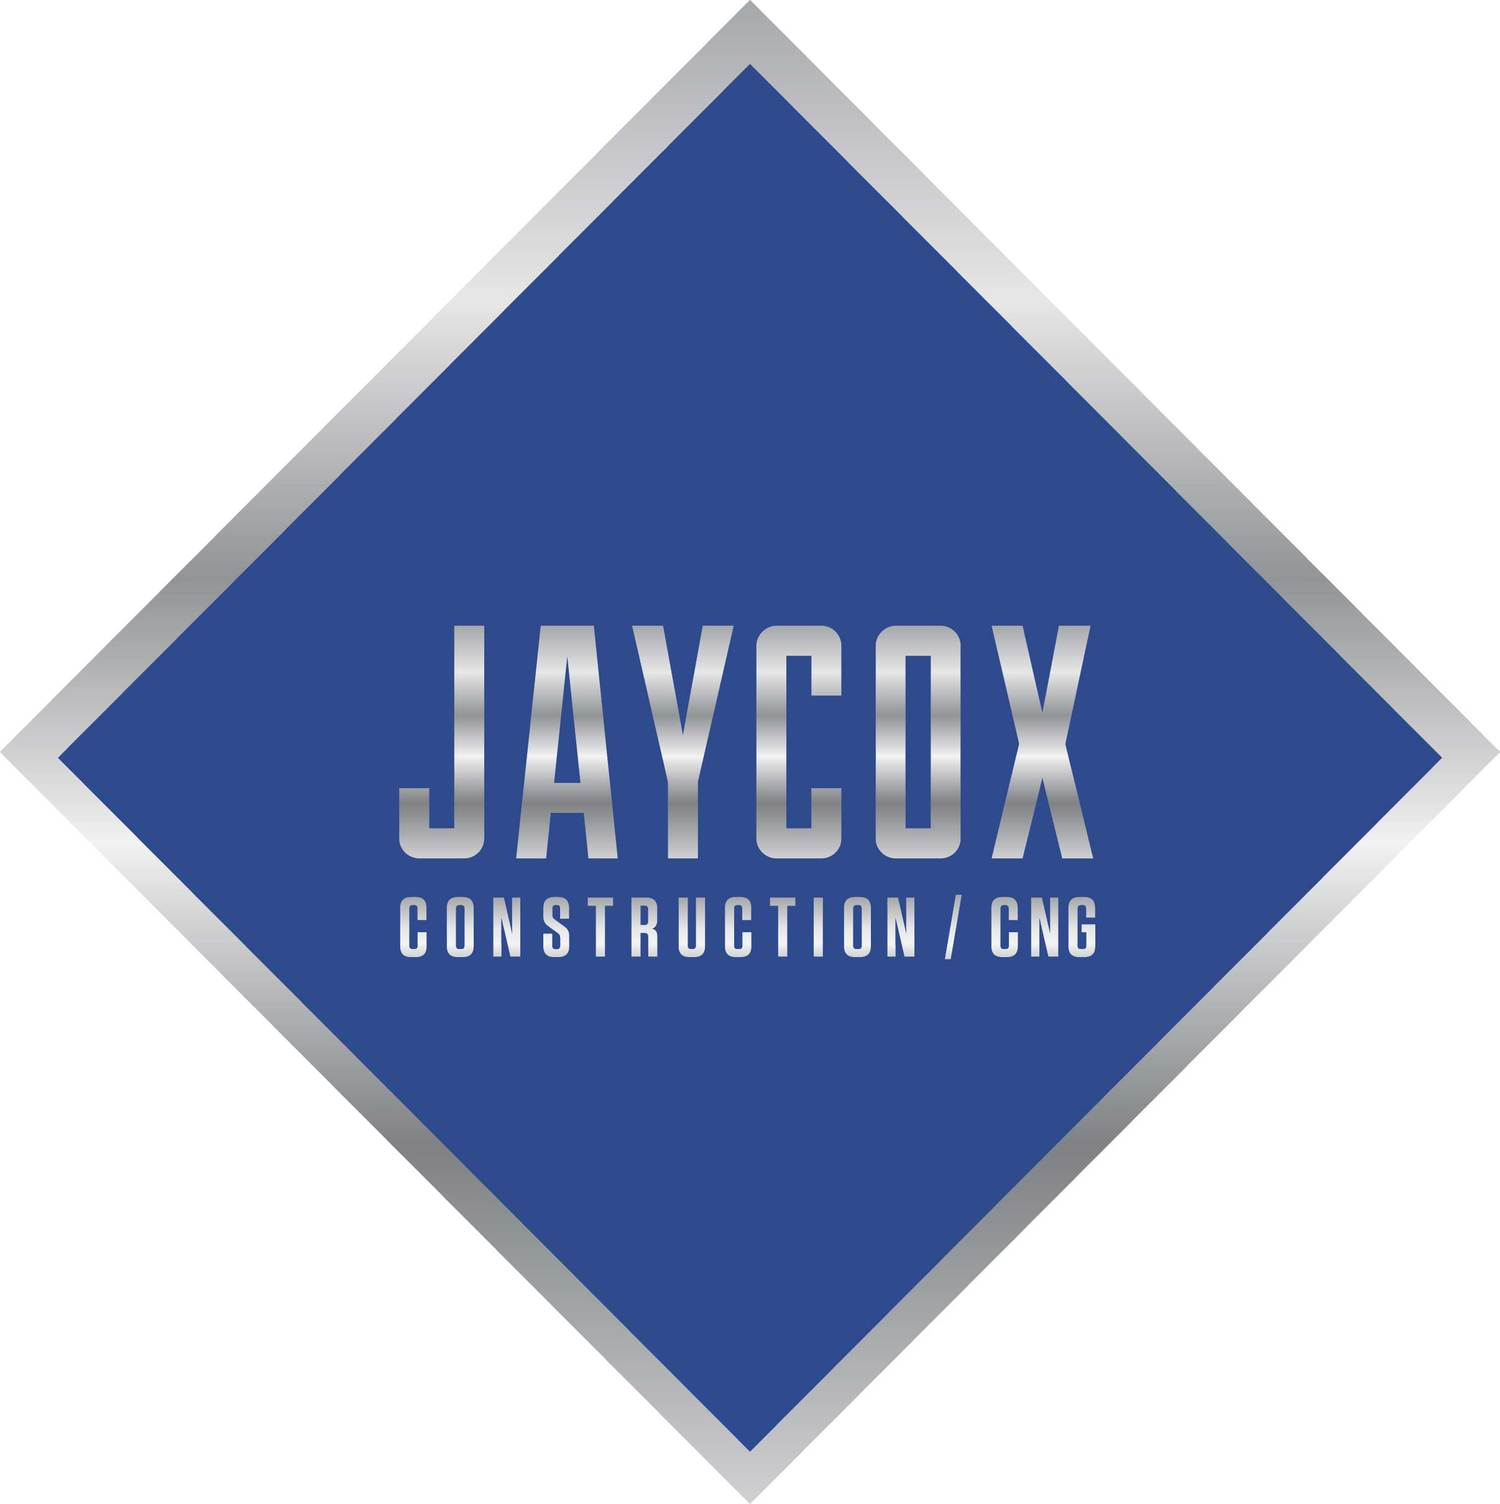 Jaycox Construction / CNG